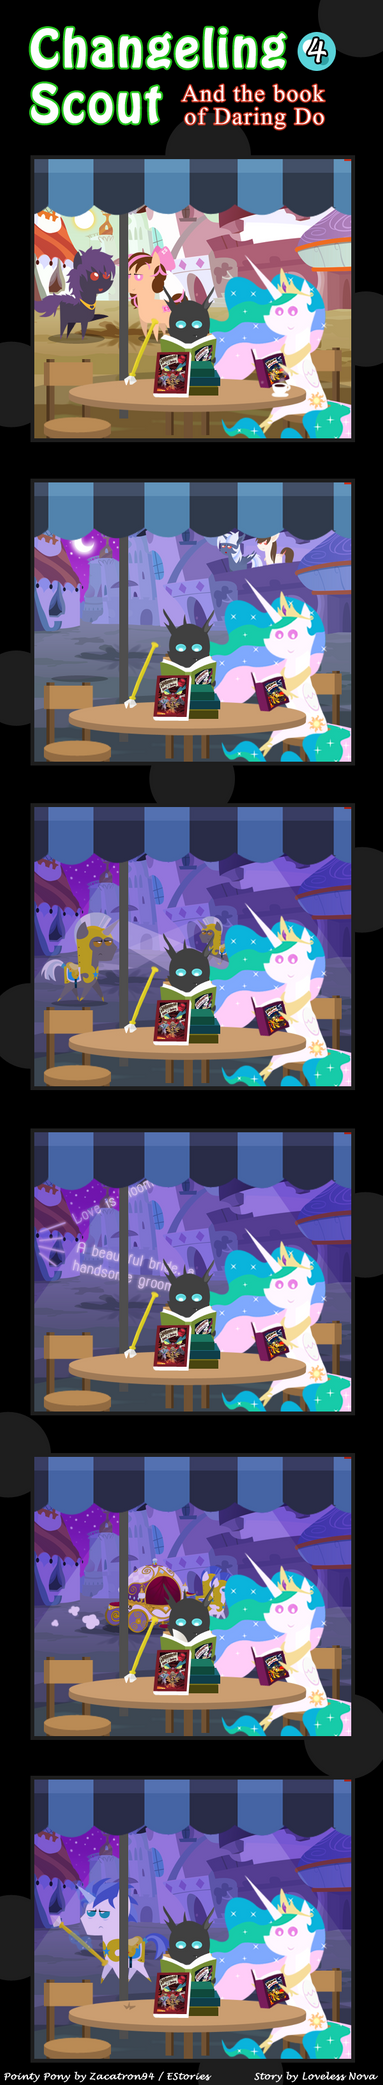 Changeling Scout And The Book Of Daring Do 04 by vavacung